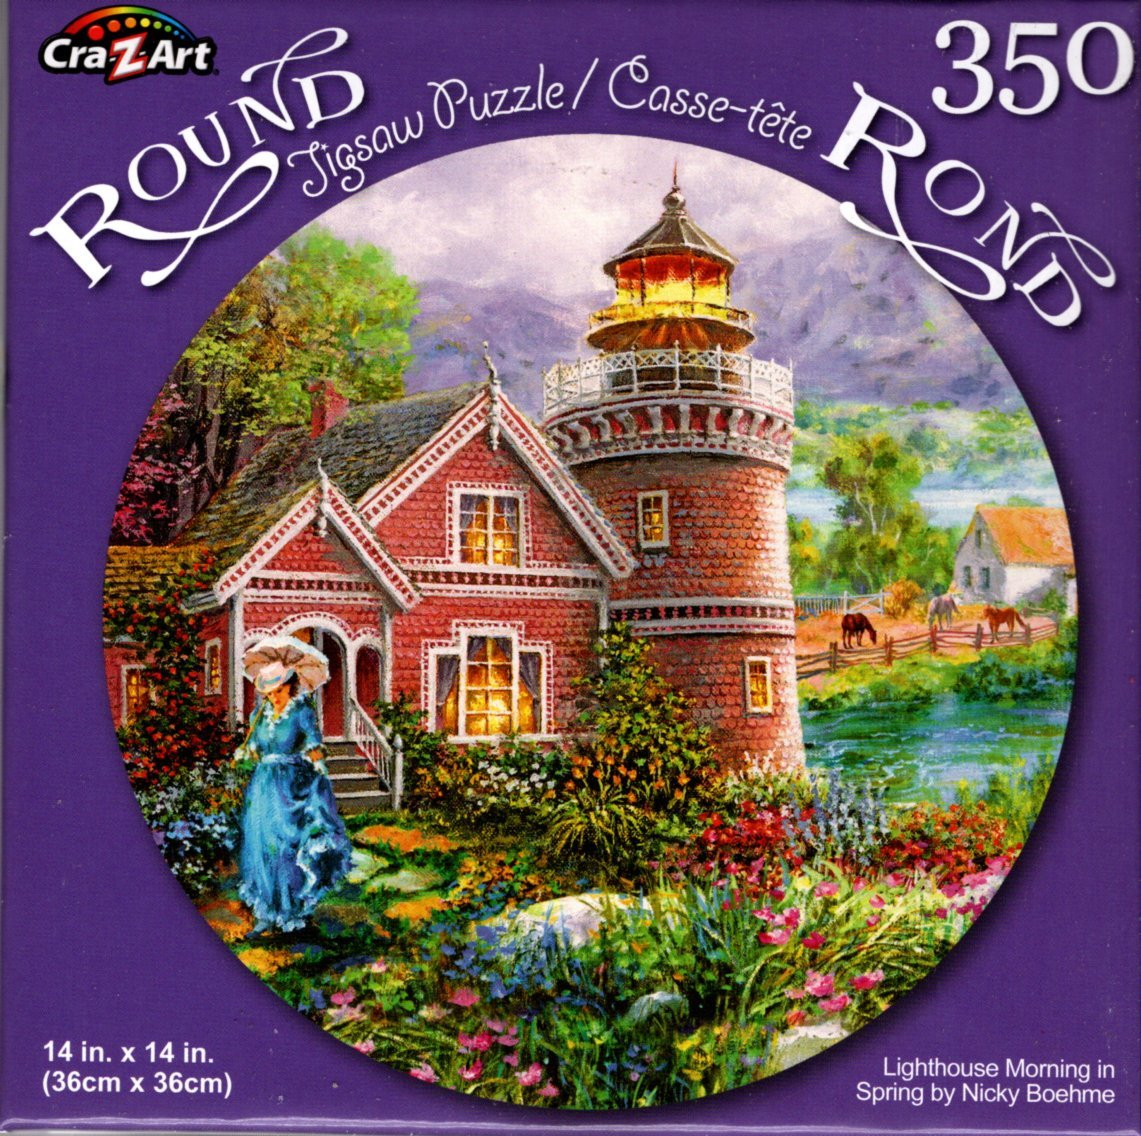 Lighthouse Morning in Spring by Nicky Boehme - 350 Piece Round Puzzle